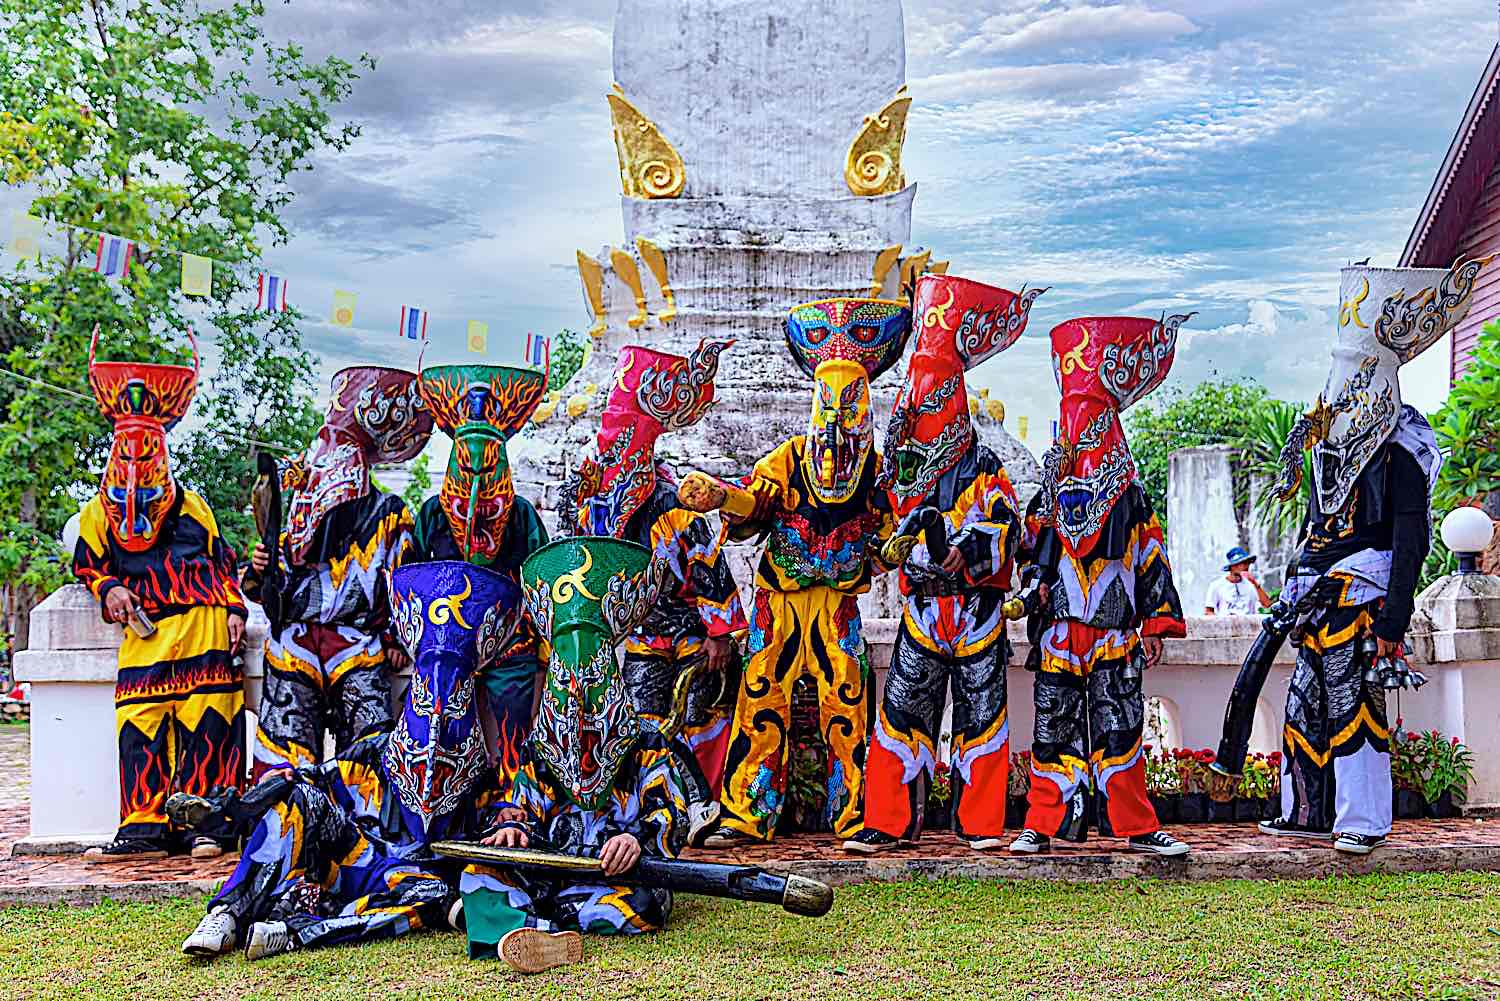 Unidentified men wear ghost costumes in Phi Ta Khon Festival is a masked procession celebrated by Buddhist at Dan Sai district, Indonesia.